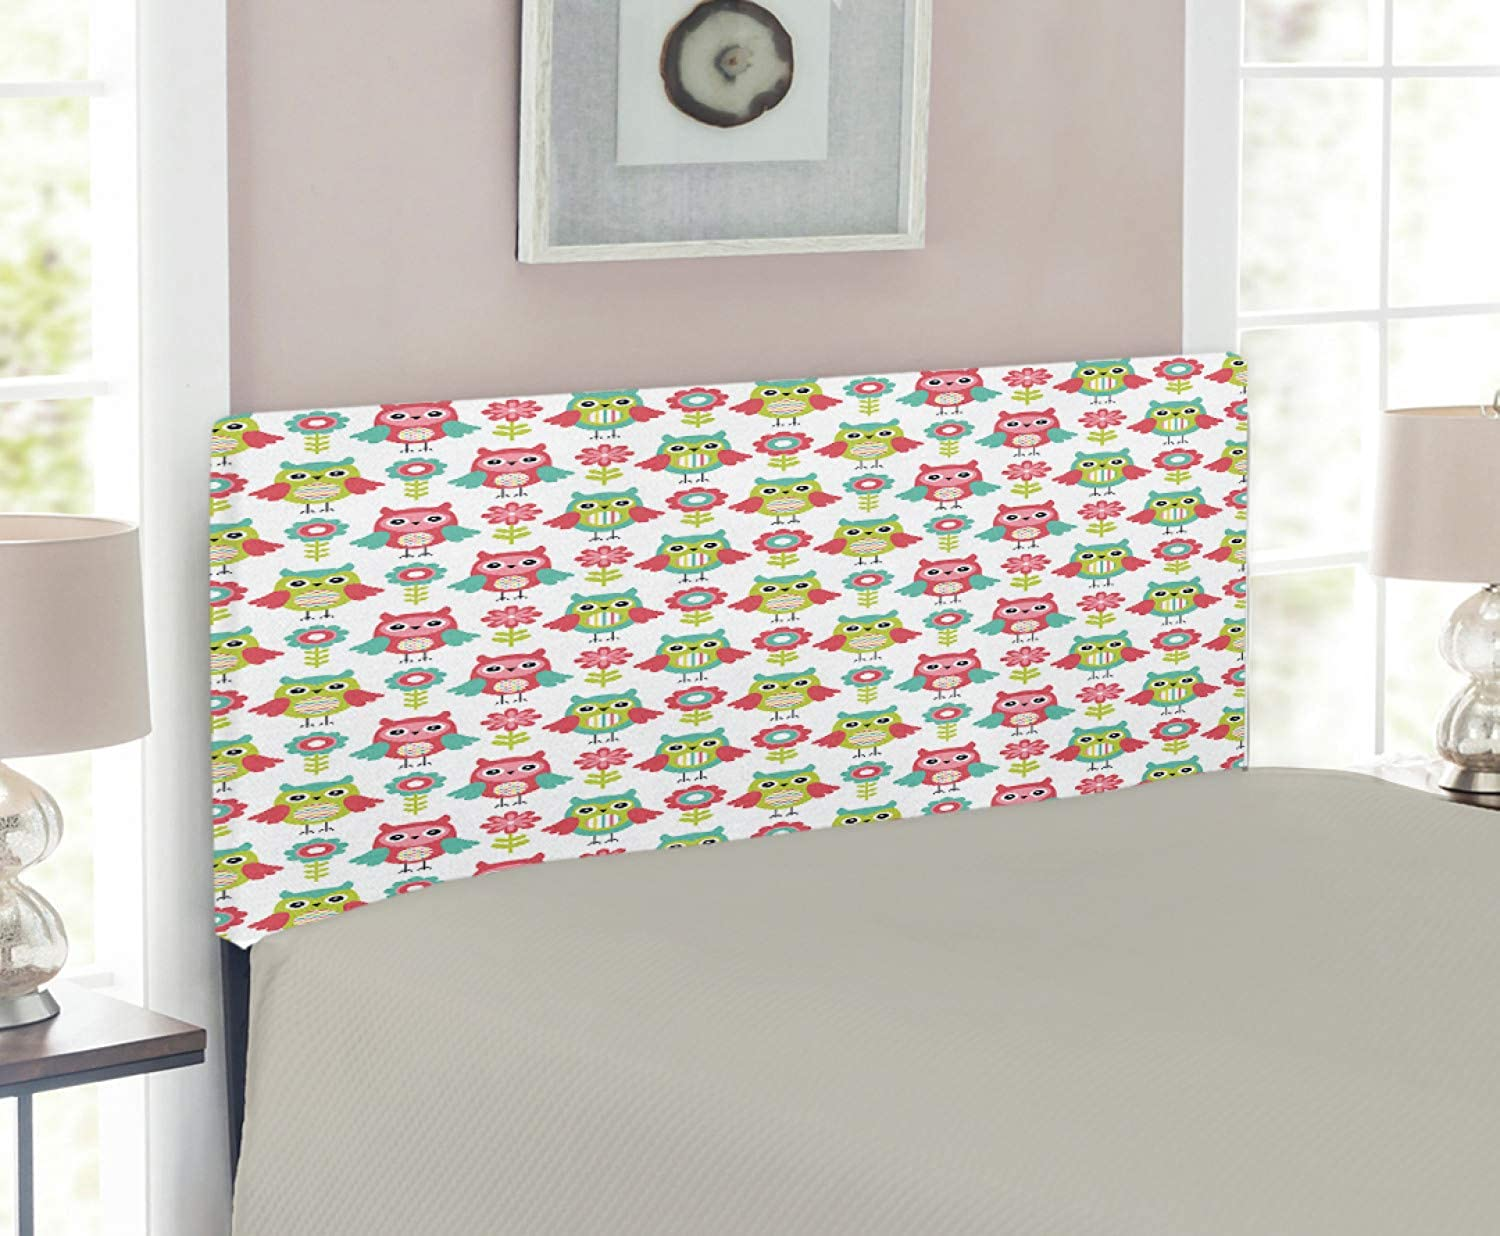 Lunarable Owls Headboard for Twin Size Bed, Cute Cartoon Owls with Flowers Cheerful Design Animals Pattern Art, Upholstered Decorative Metal Headboard with Memory Foam, Dark Coral Seafoam Apple Green